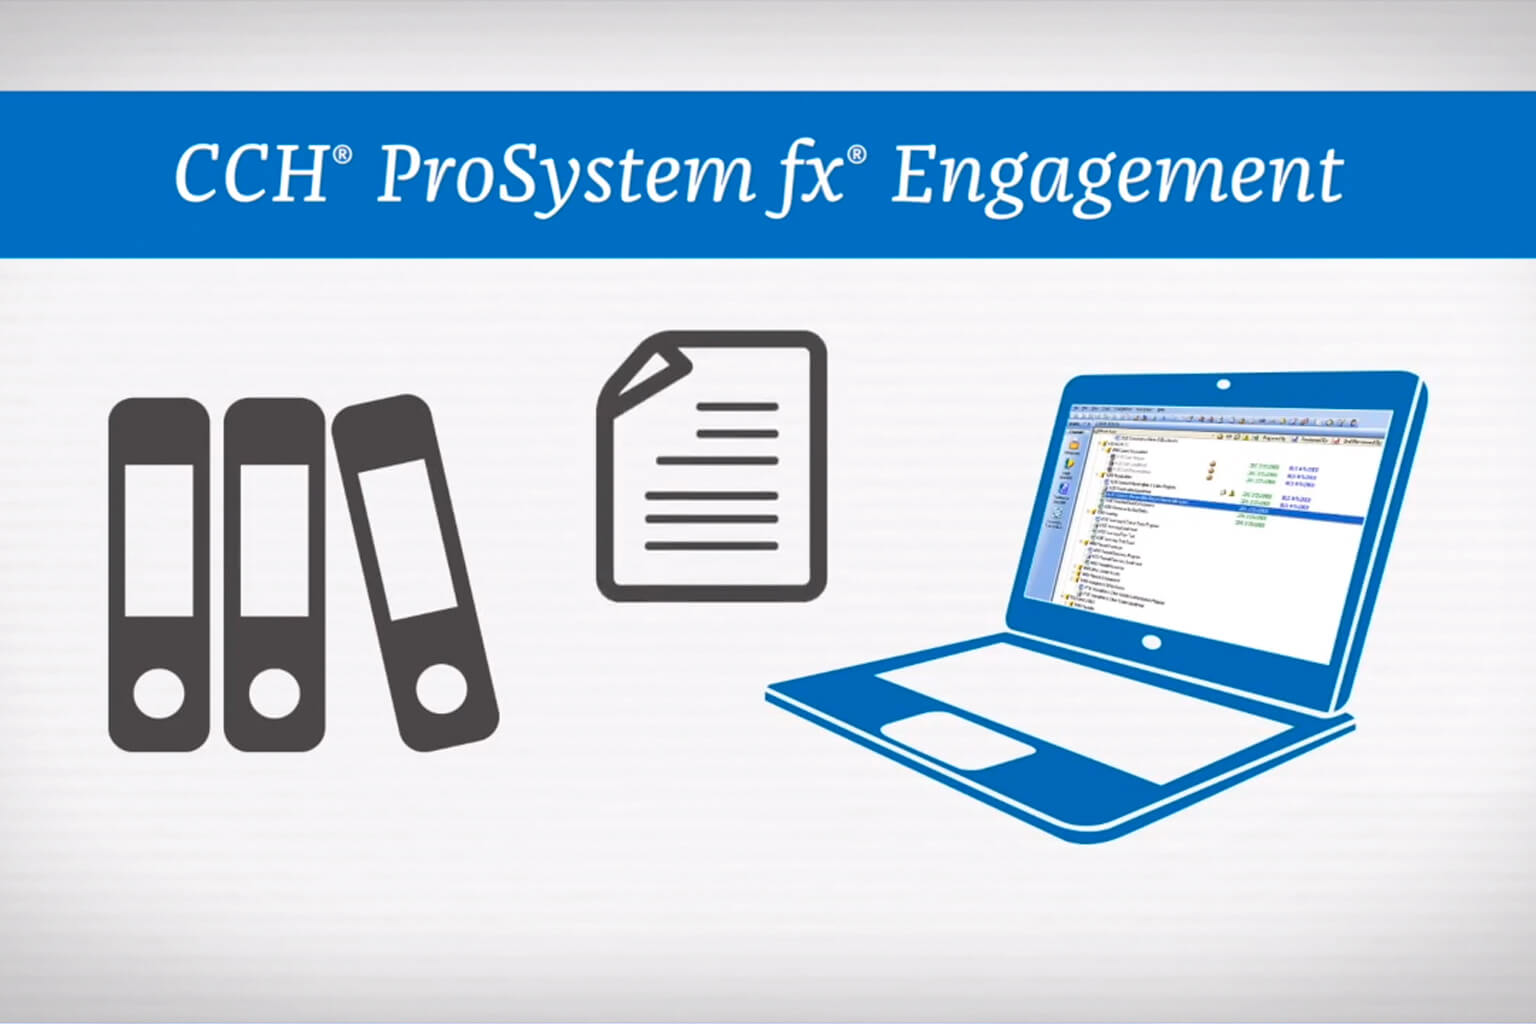 CCH ProSystem fx Engagement Overview Video